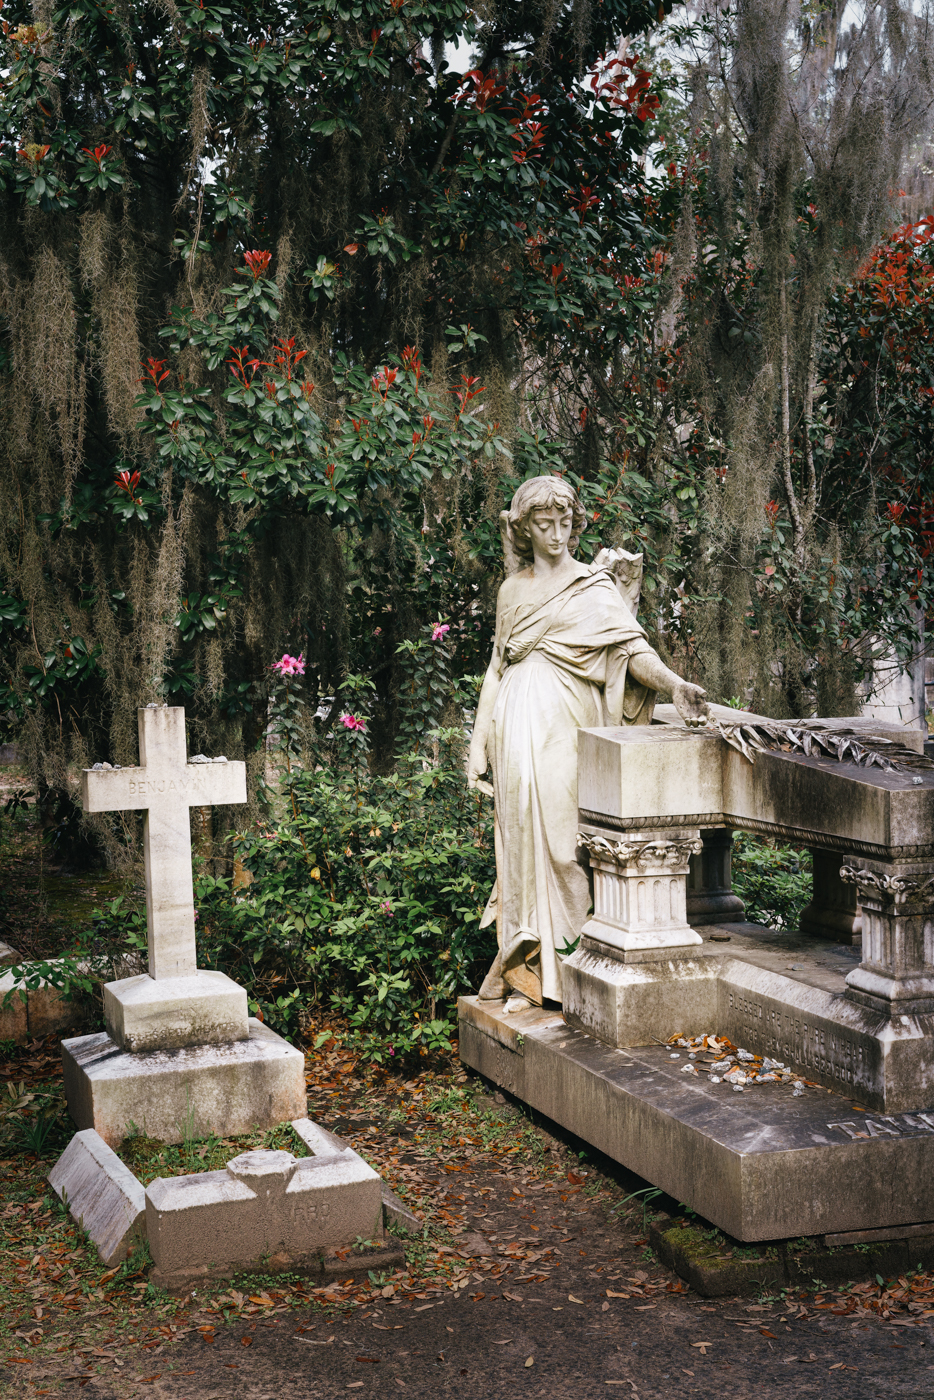 I usually hate cemeteries, but this one is beautiful. And full of interesting ghosts.